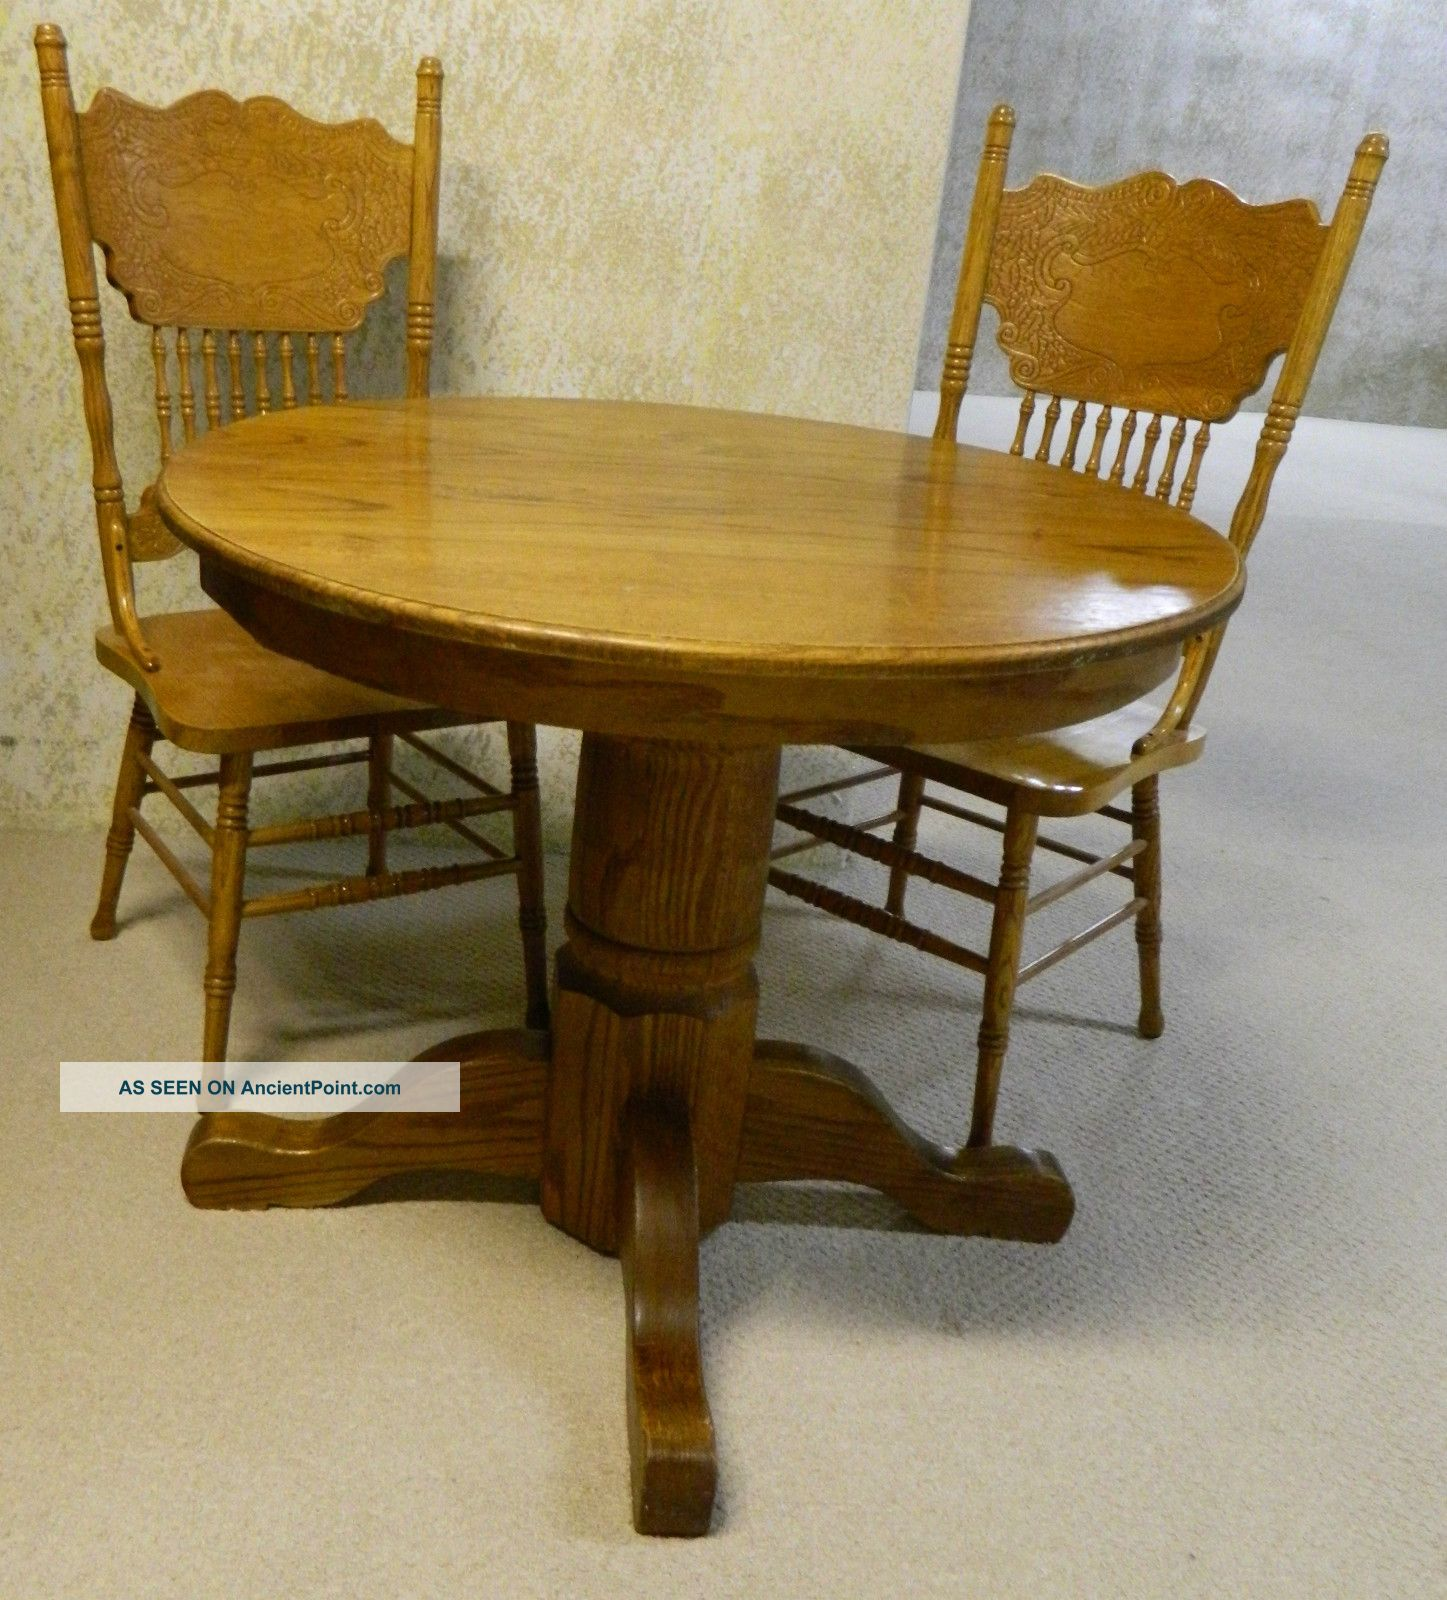 Small Inch Diameter Dining Table And Chair Set Sturdy Wooden - 36 diameter dining table